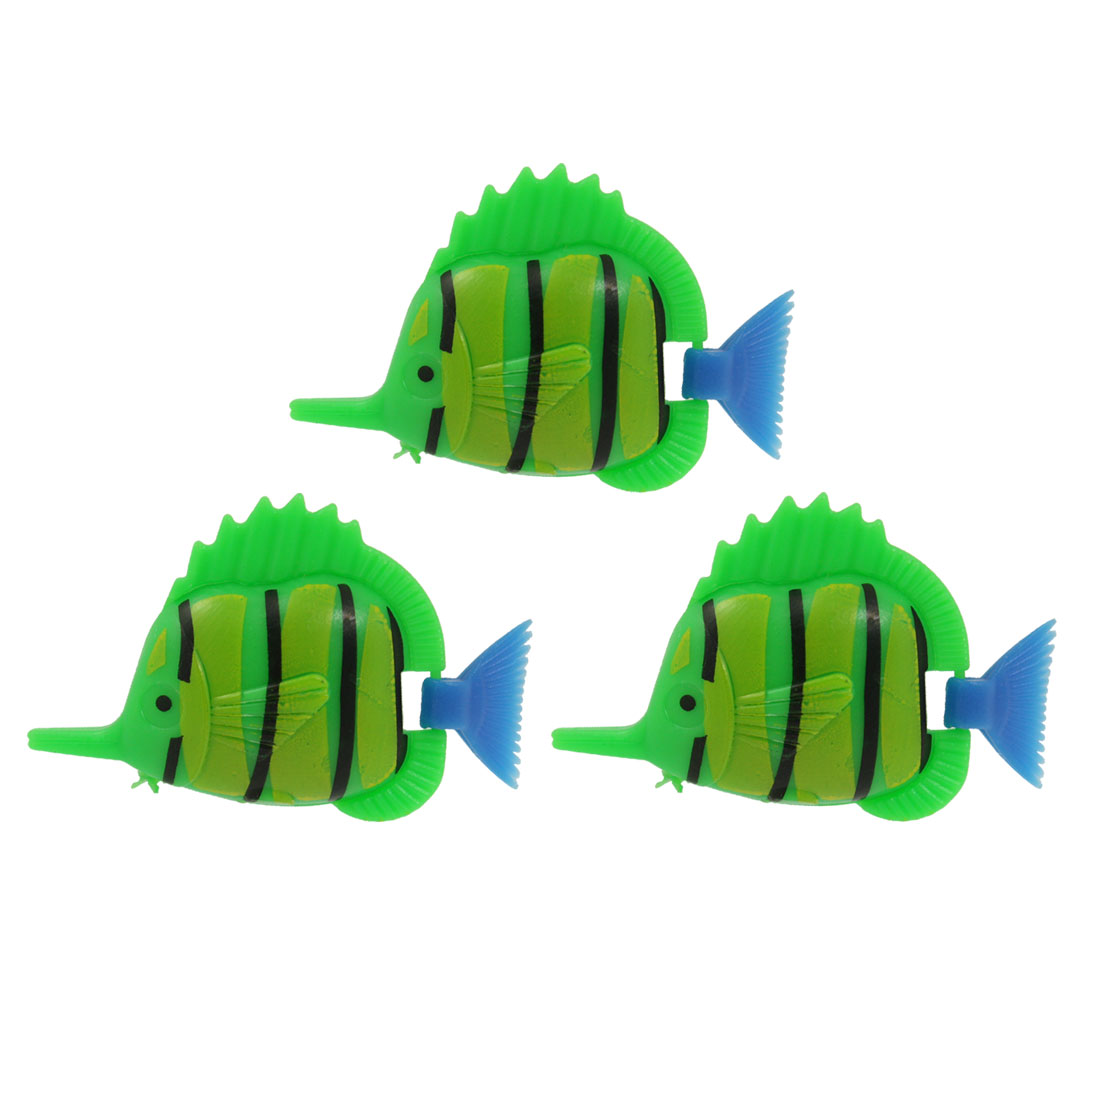 3 Pcs Aquarium Striped Swimming Plastic Fish Decoration